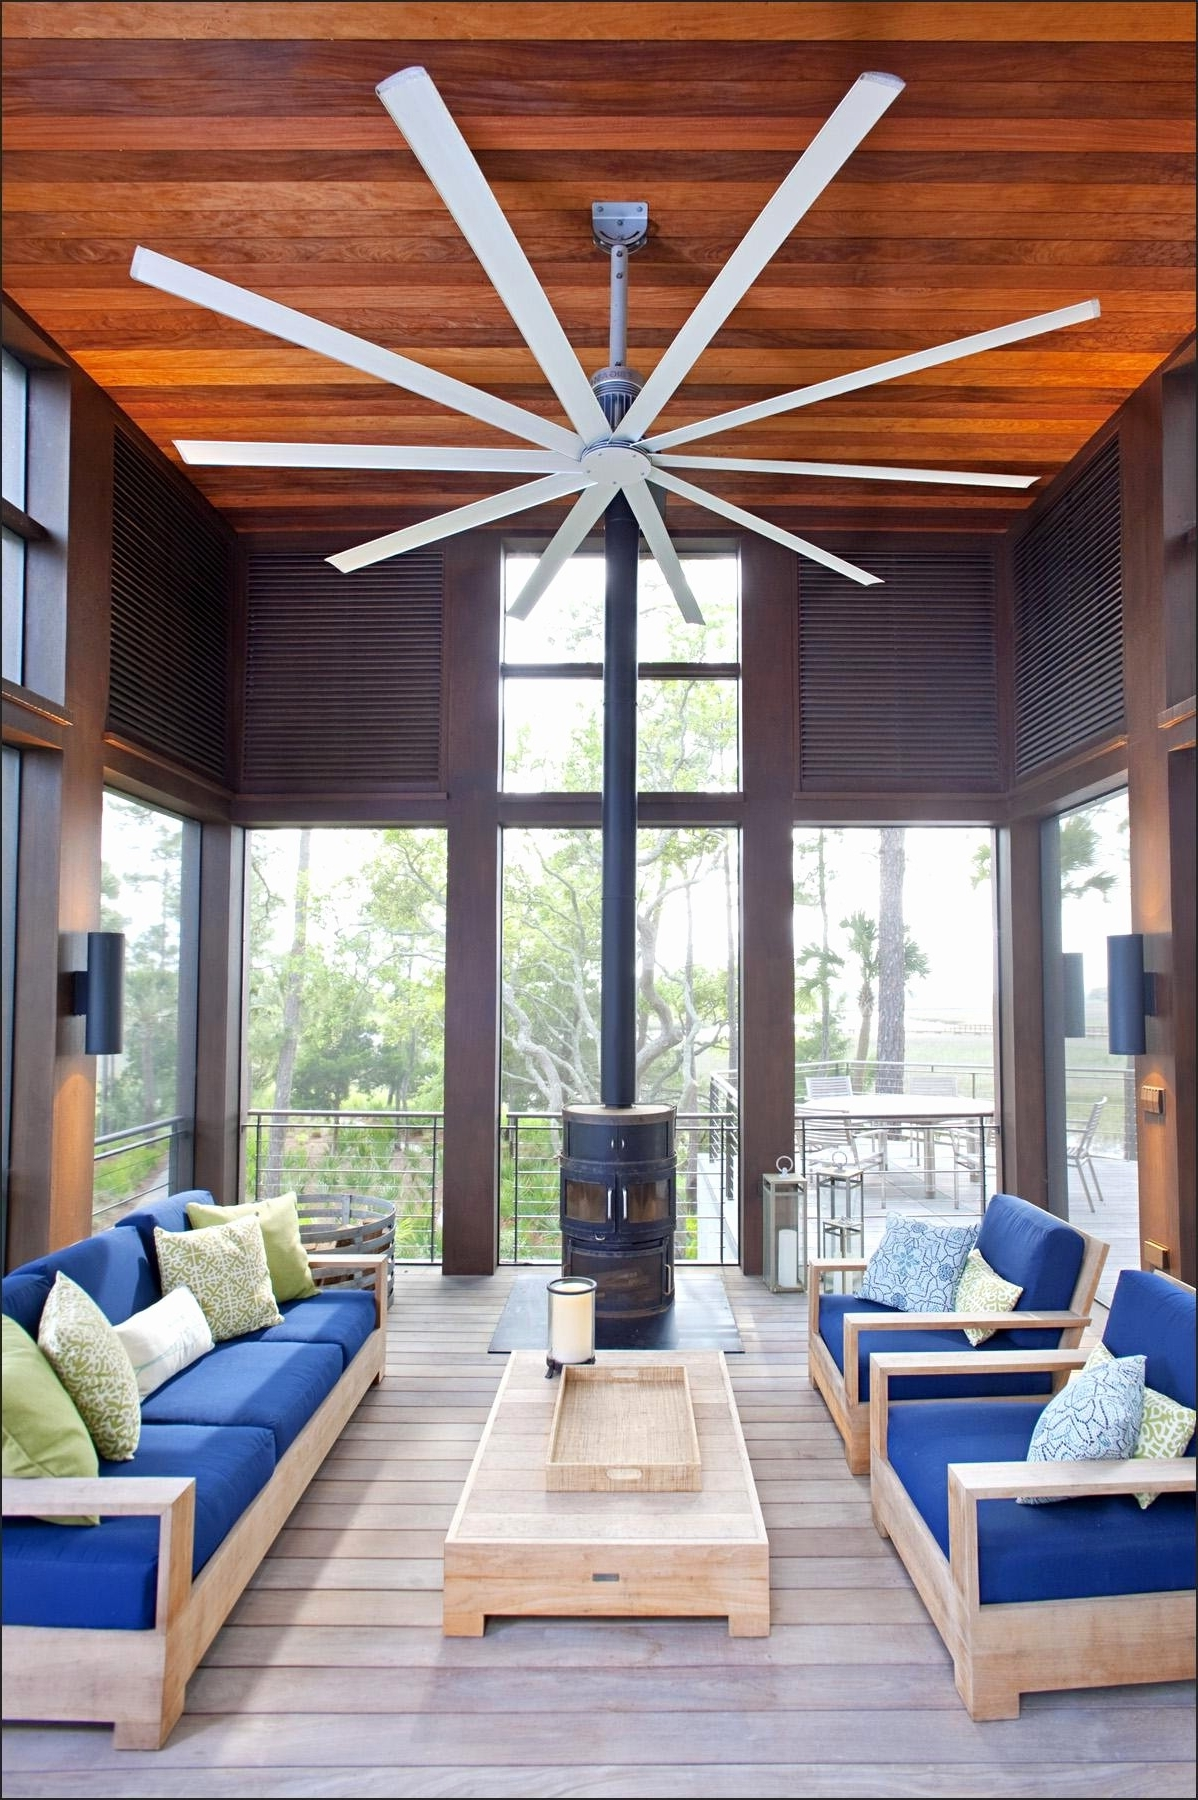 Popular Water Misters For Patios Best Of 50 Awesome Outdoor Ceiling Fans Pertaining To Outdoor Ceiling Fans With Misters (View 11 of 20)